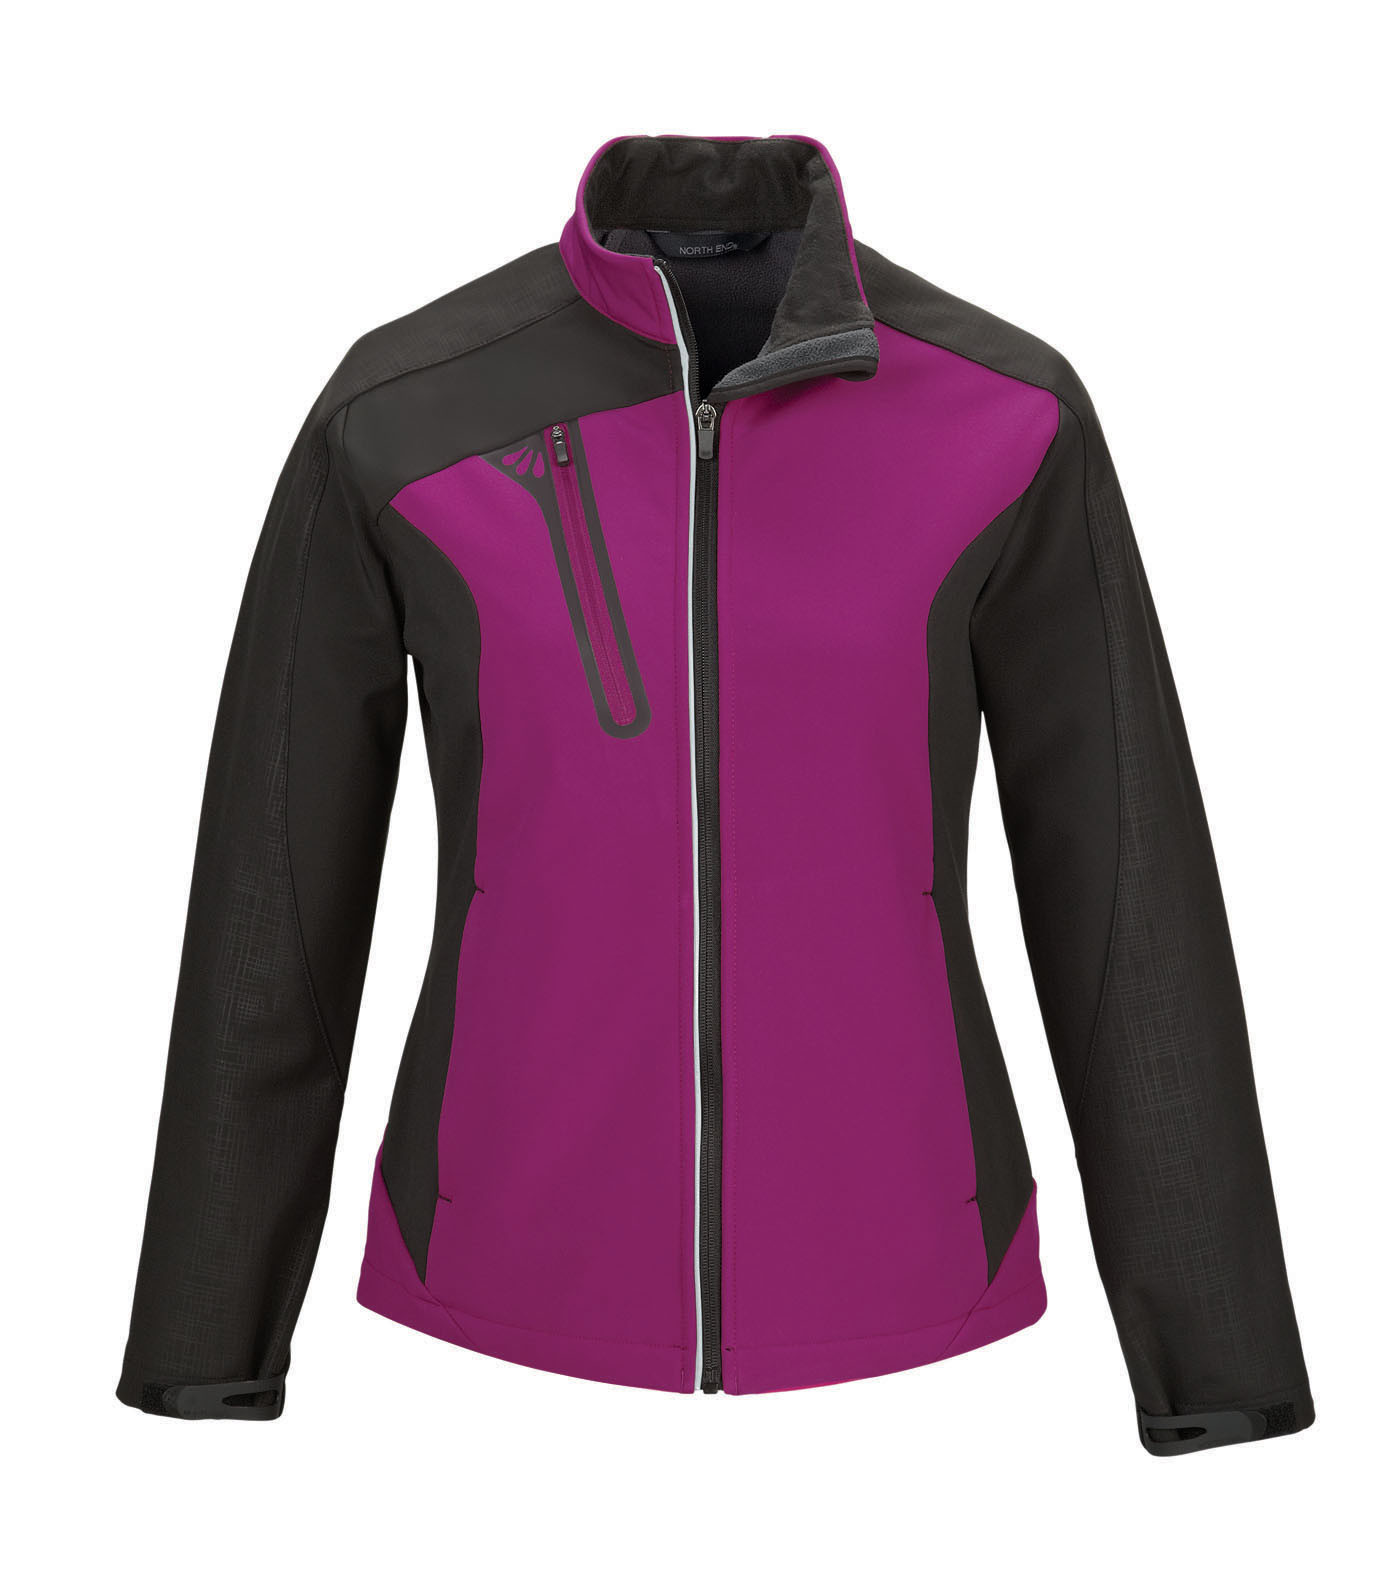 Ash City UTK 1 Warm.Logik 78176 - Terrain Ladies' Color-Block Soft Shell With Embossed Print